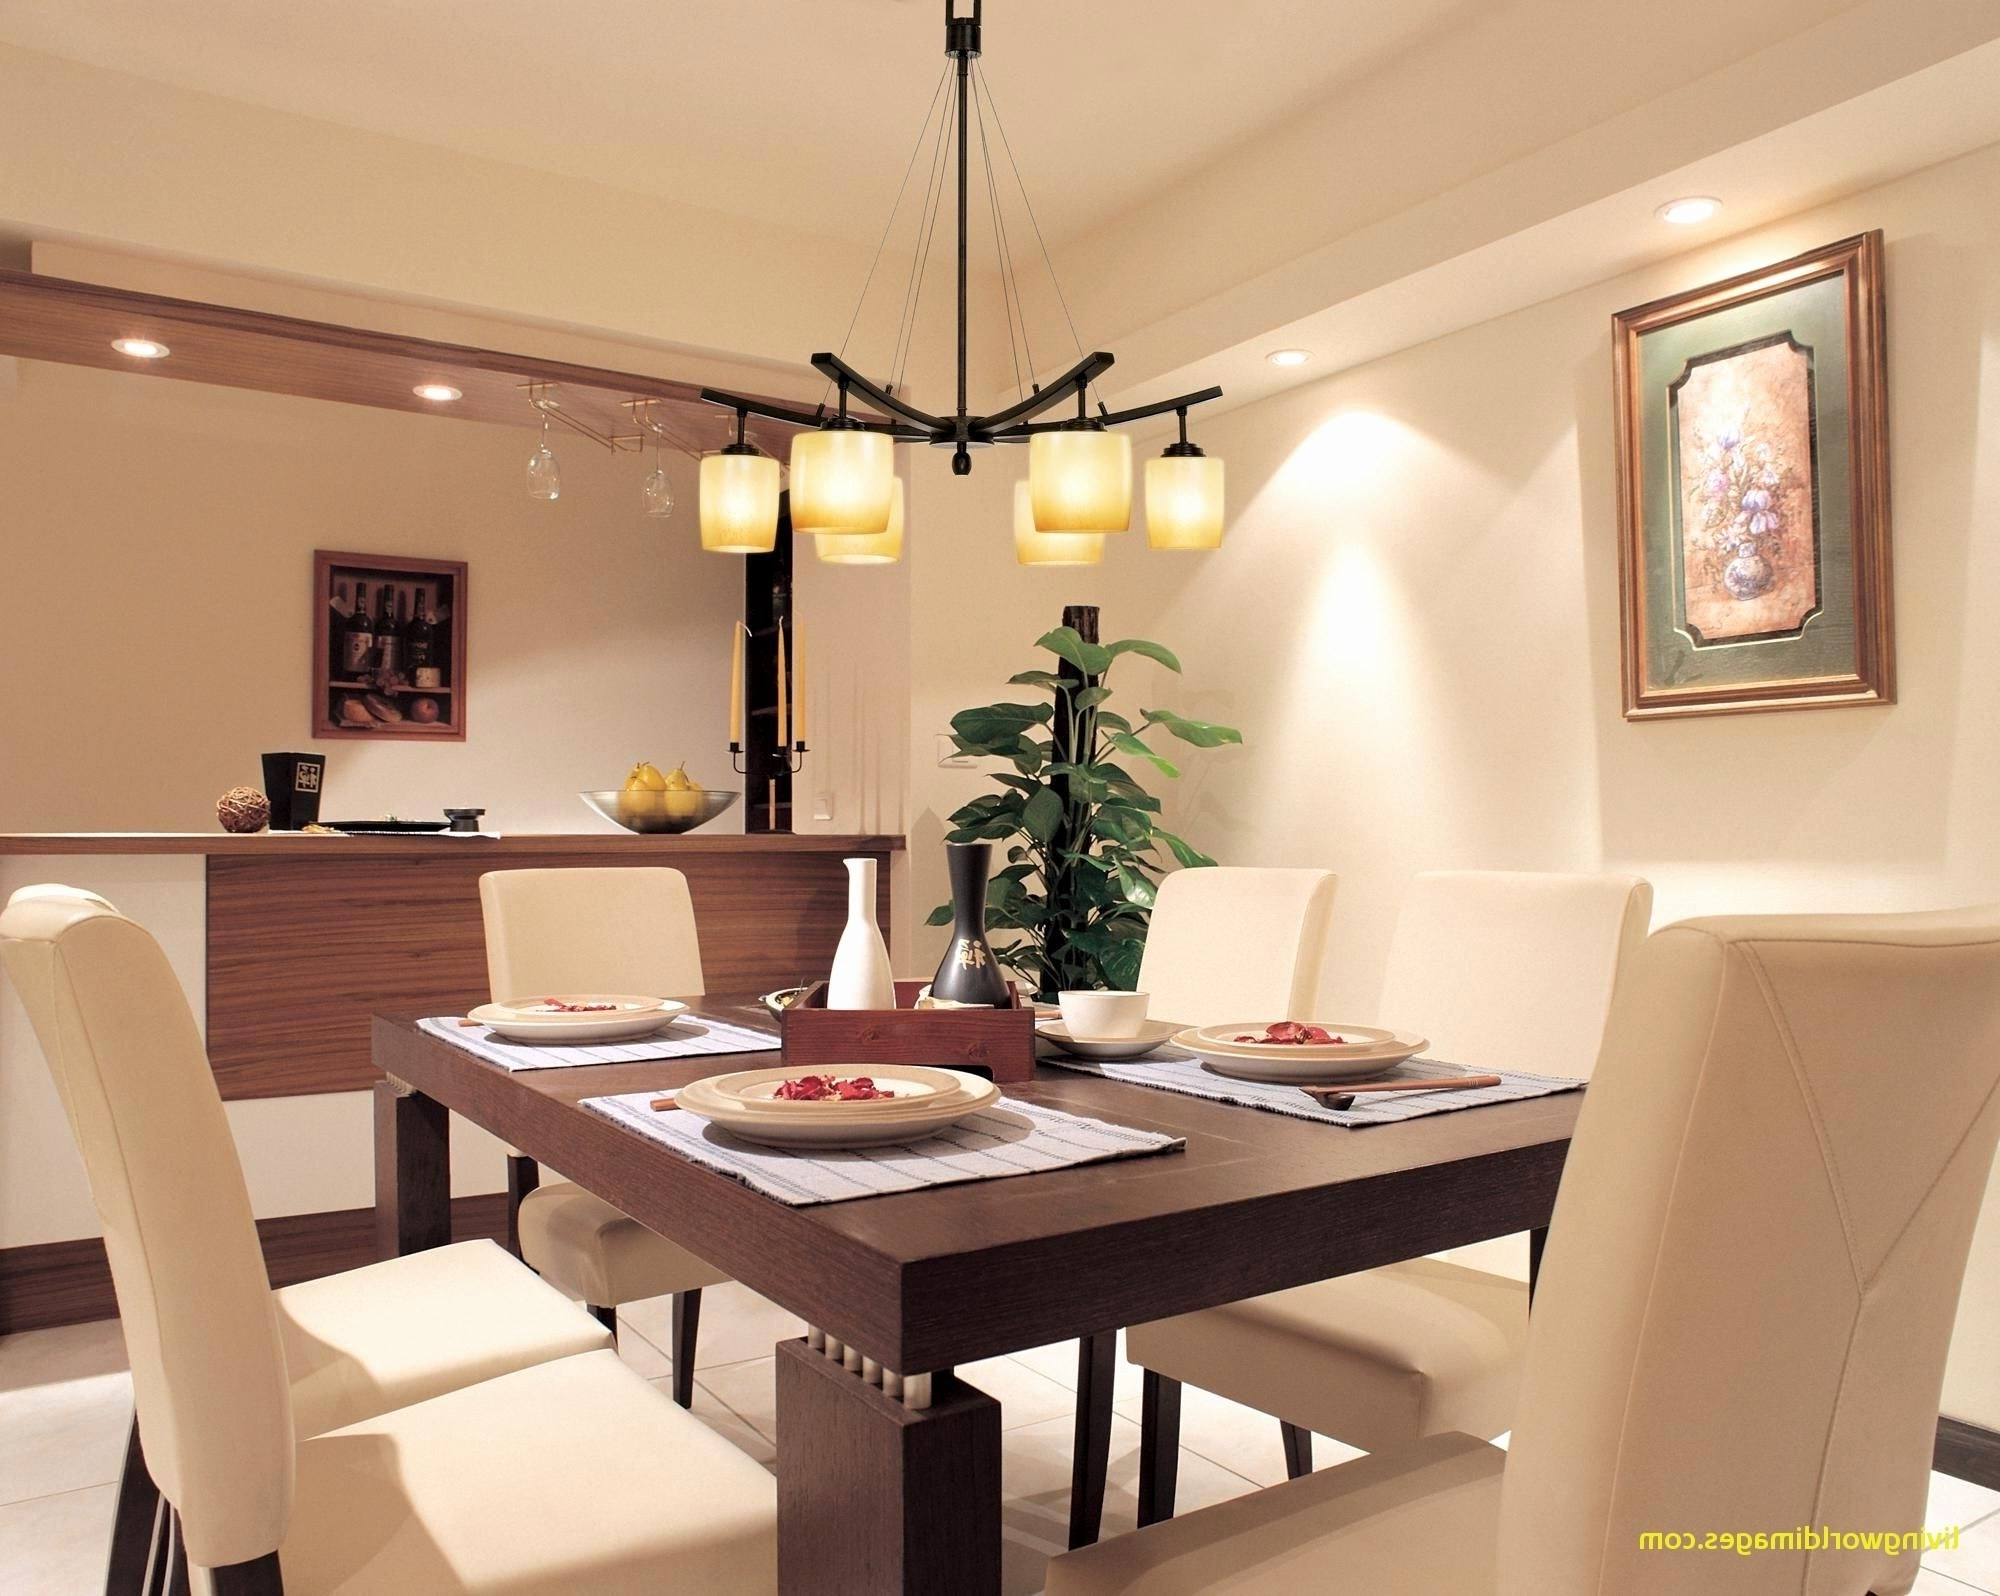 Popular Led Dining Tables Lights With Top 22 Elegant Dining Room Table With Led Lights – Welovedandelion (View 4 of 25)